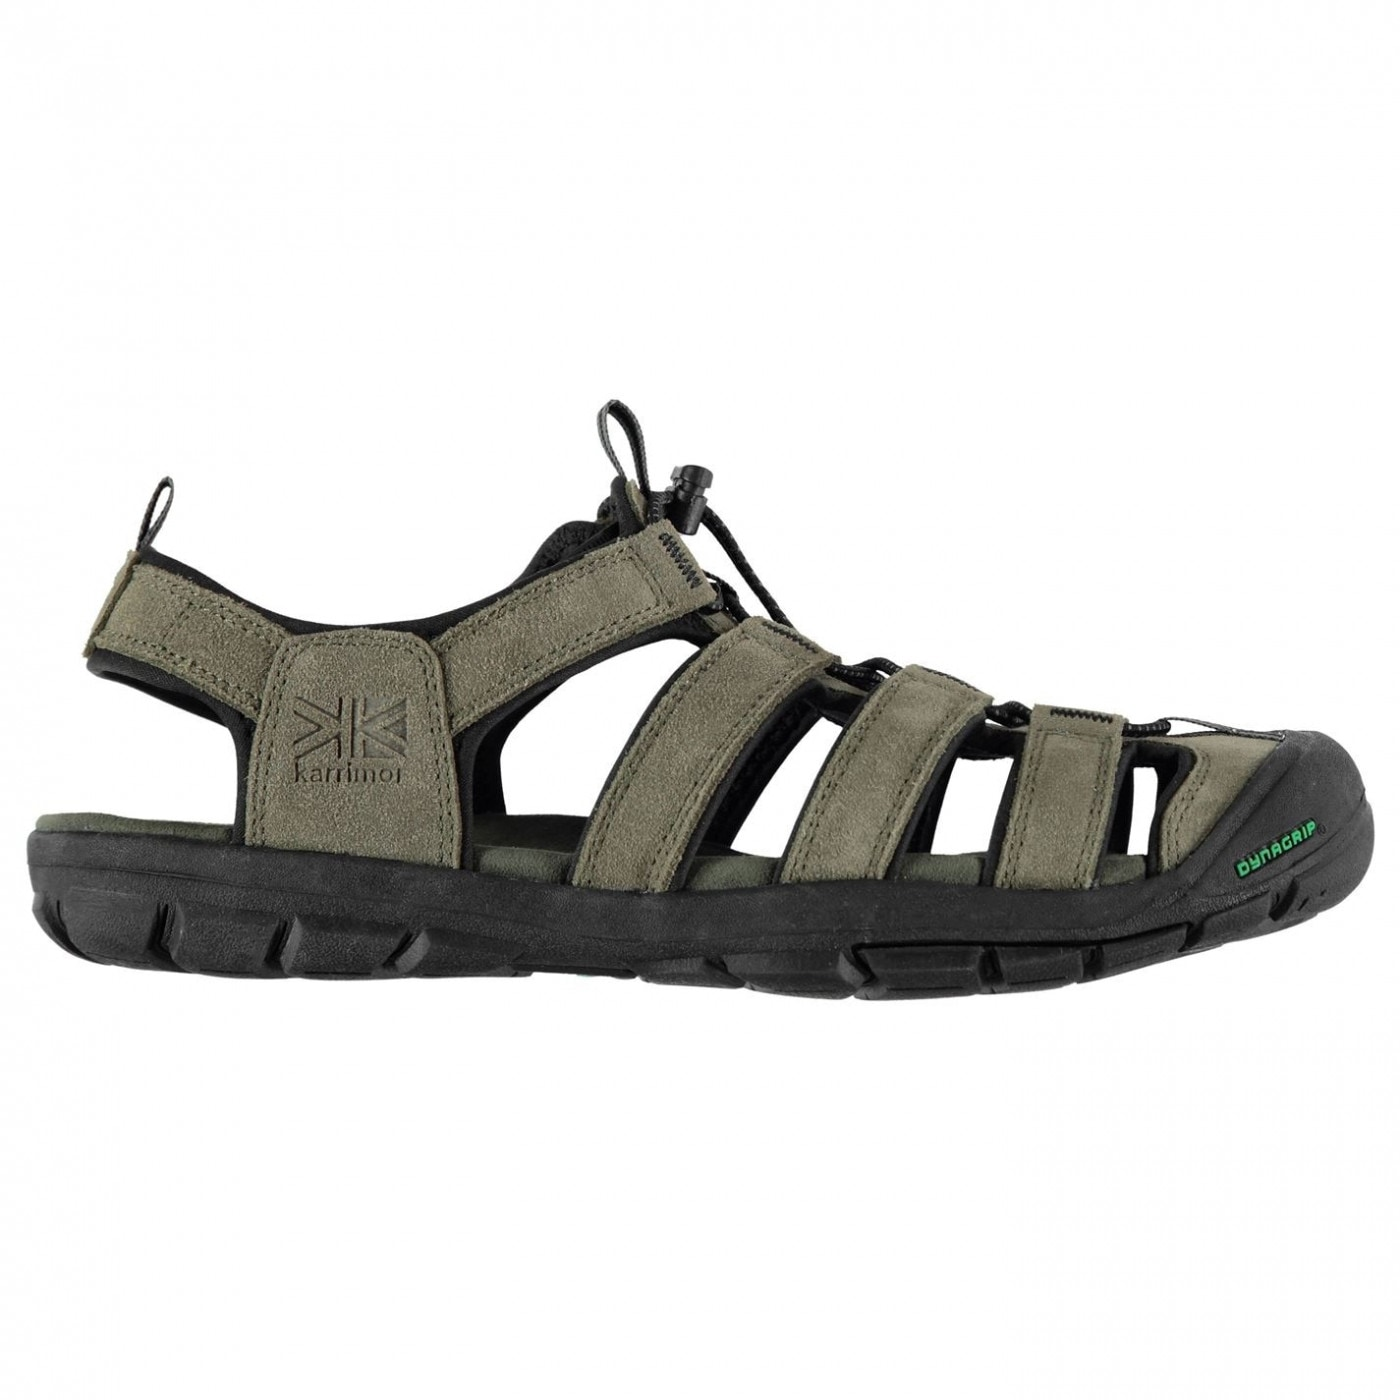 Men's sandals Karrimor Ithaca Leather